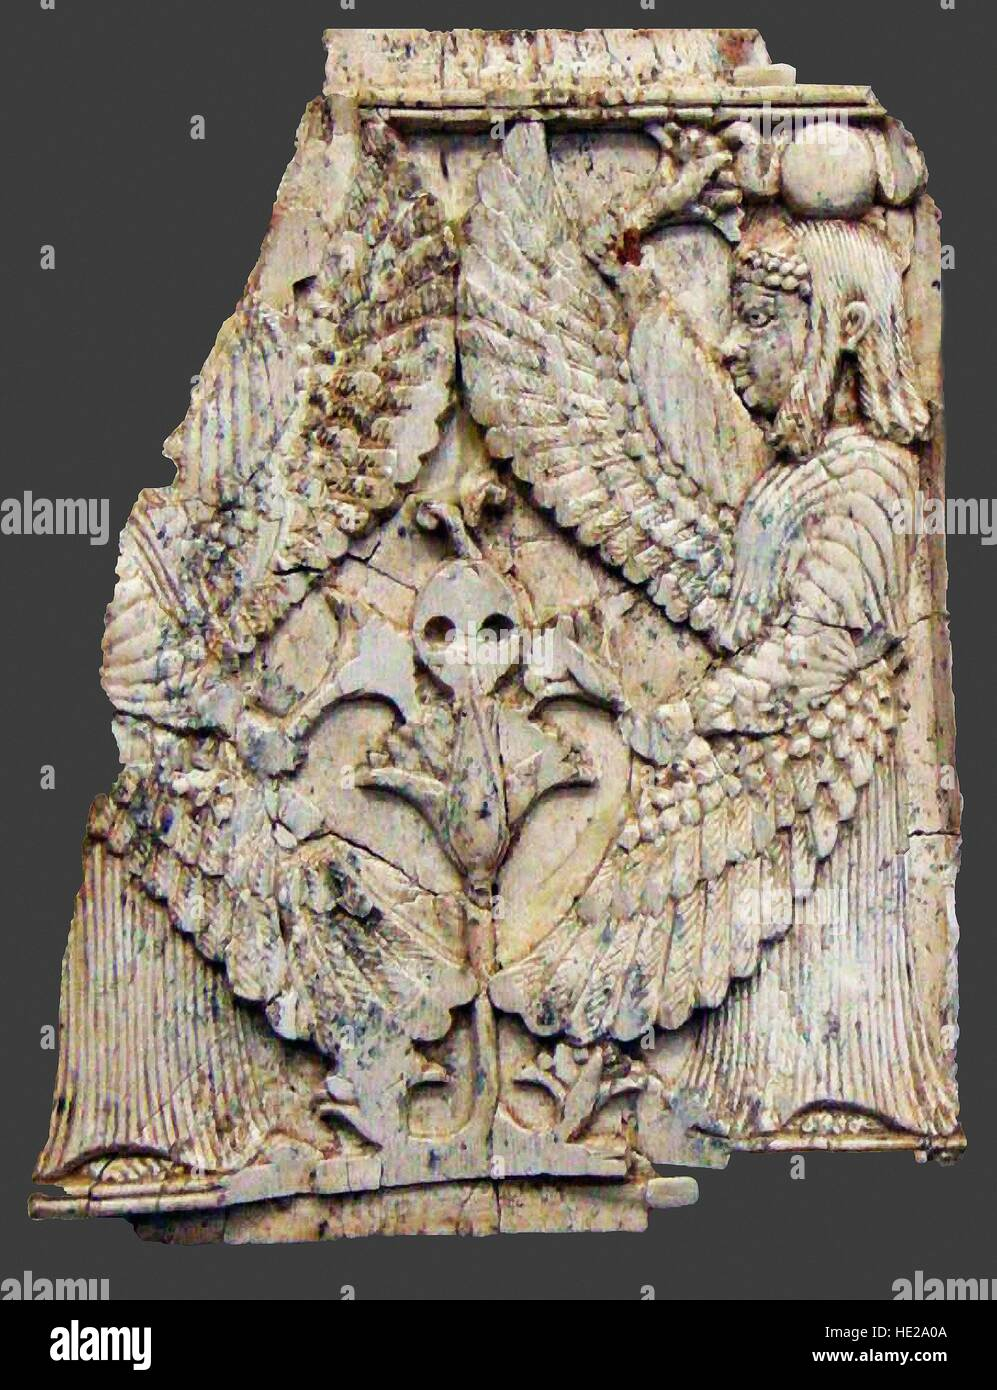 6015. Ivory plaque depicting winged creatures. Nimrud, Mesopotamia, 8-7th. C. BC. - Stock Image